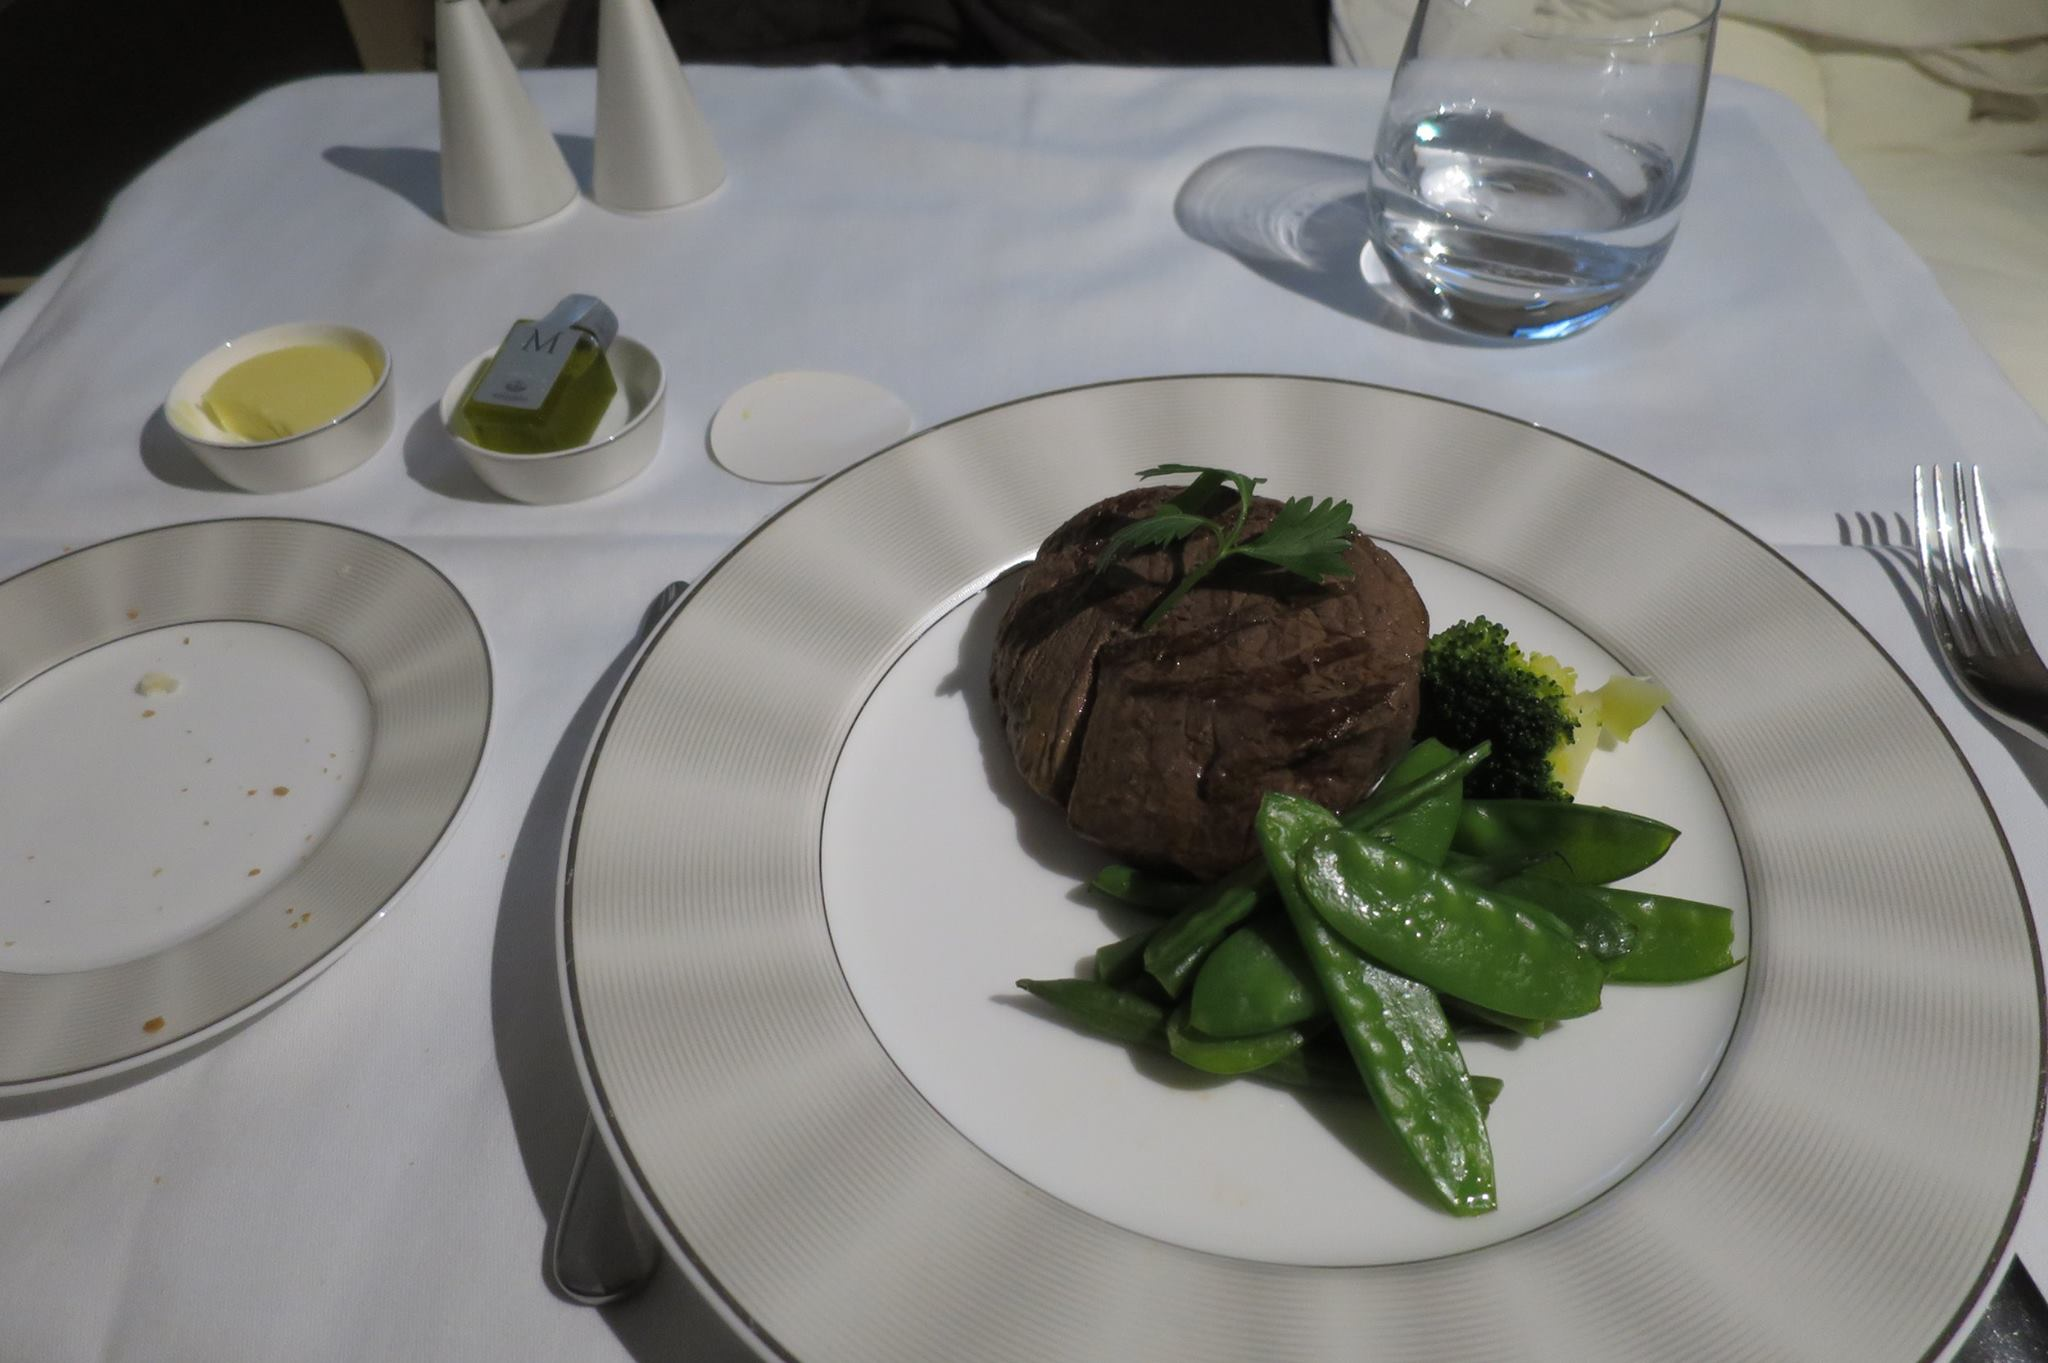 I will say that I've had better steaks on other airlines. It is still quite good